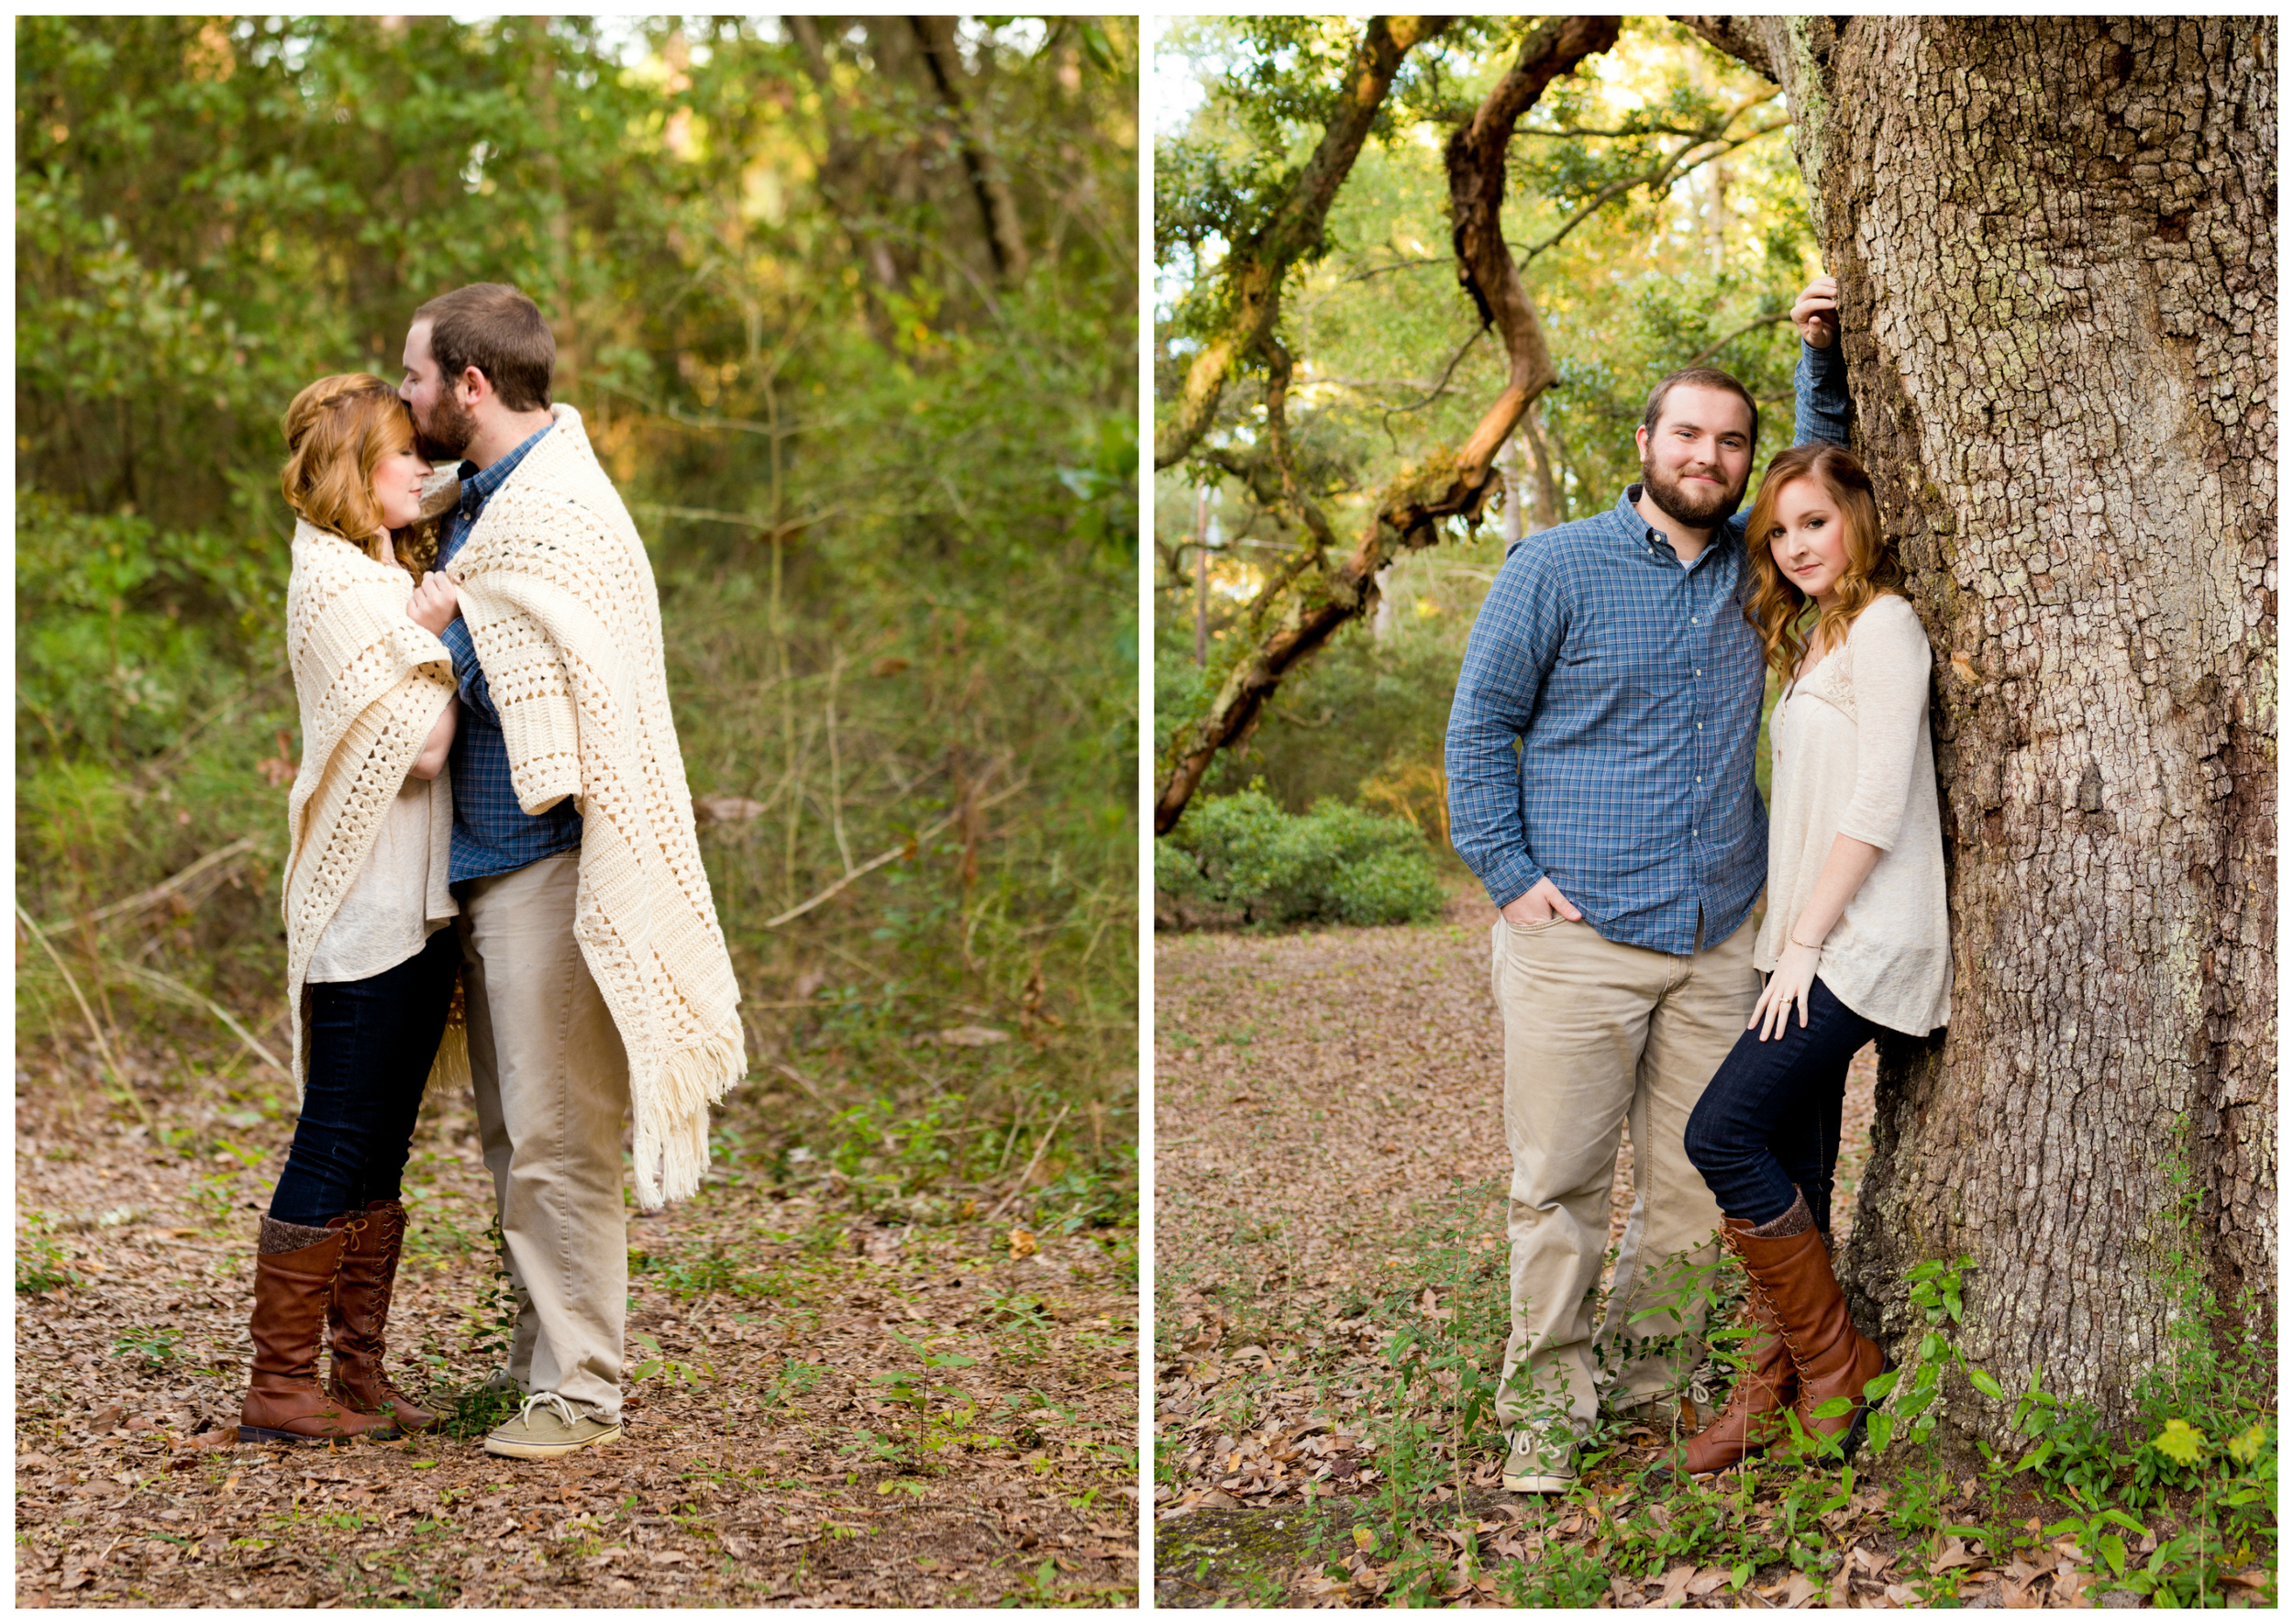 Ocean Springs outdoor engagement photography with live oak trees, blanket